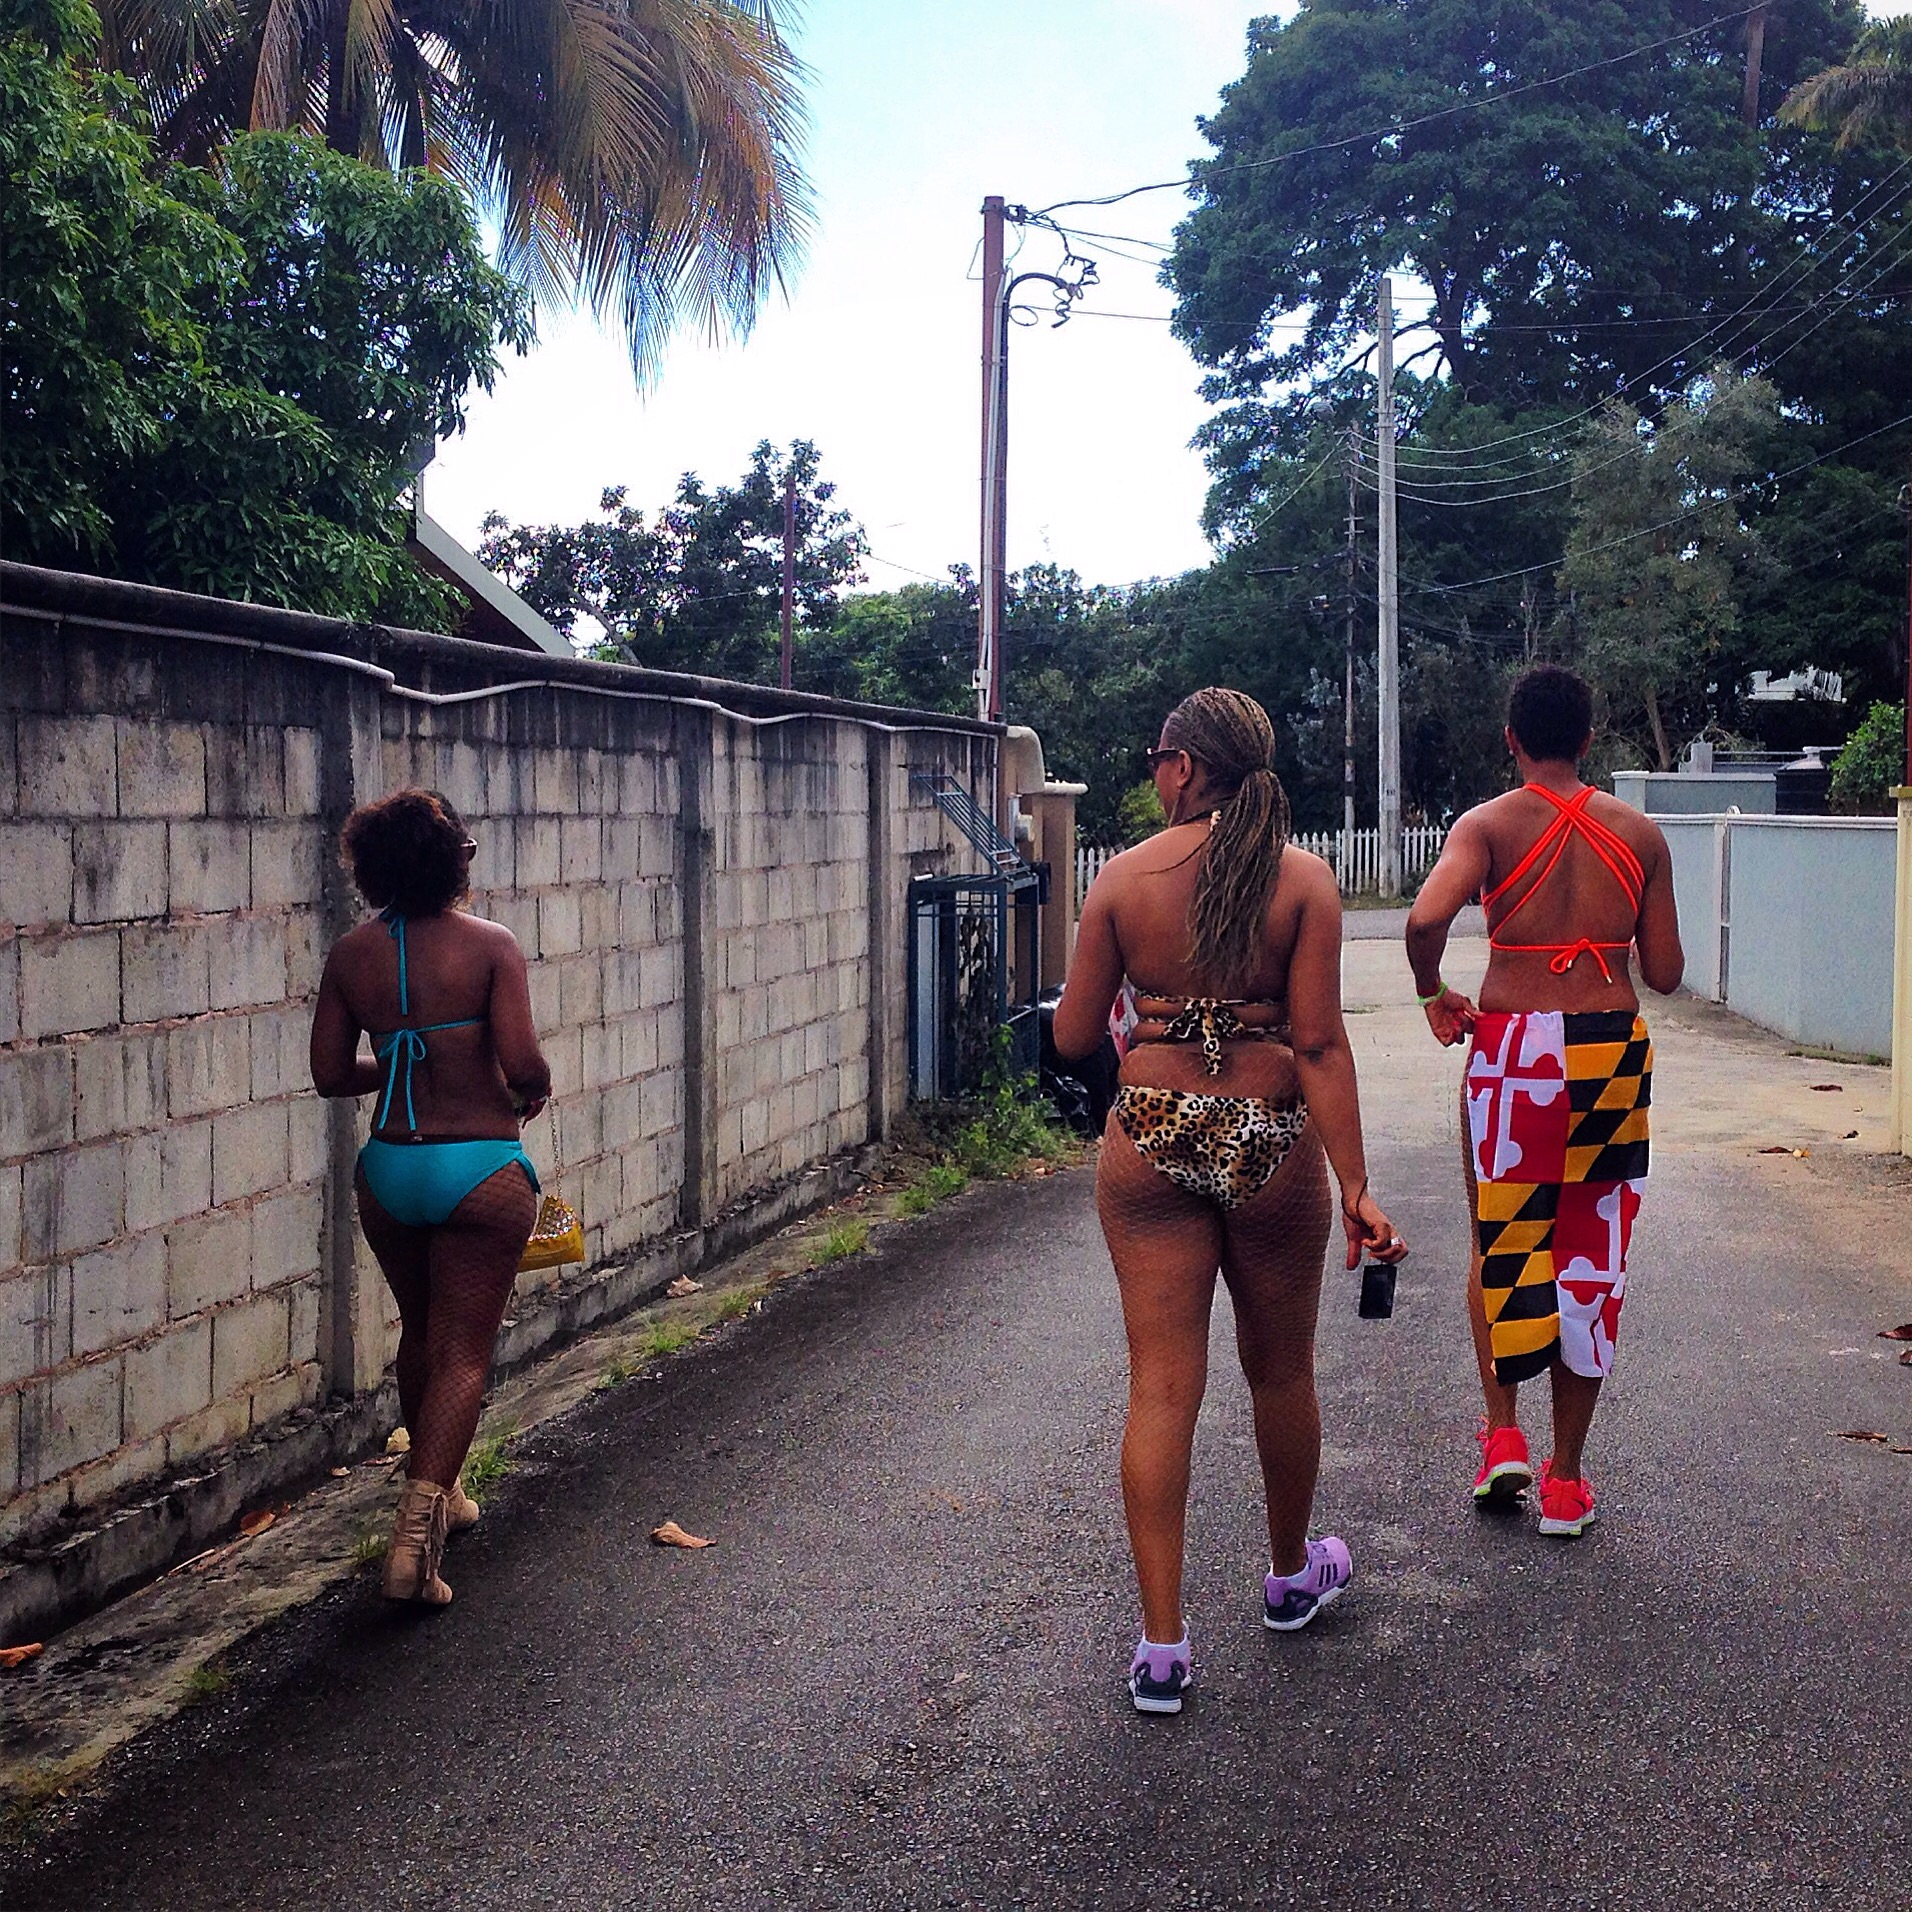 Staying with some ambitious young ladies, friends of a friend, american consultants to the island's ruling political party. But like everyone else they get the week (weeks?) off to get down. Walking downtown from the rich, traditionally white, hills of Maraval. Race and class are constant topics of discussion.